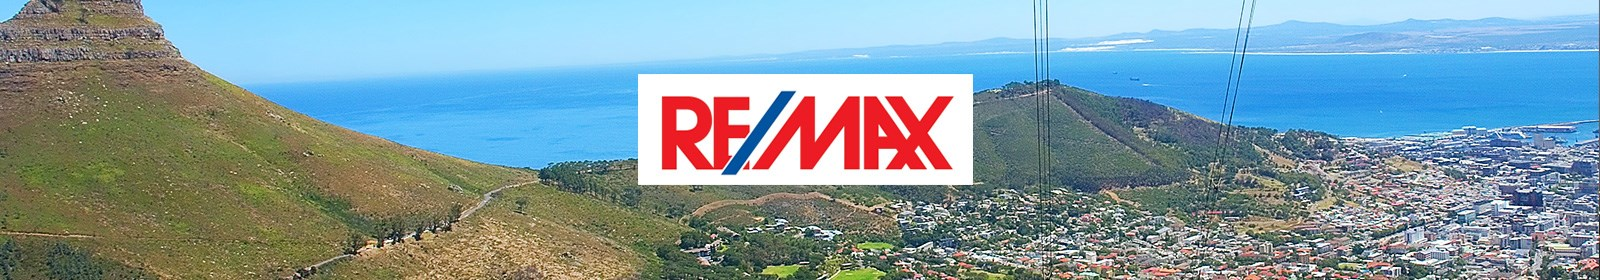 RE/MAX of Southern Africa appoints COO